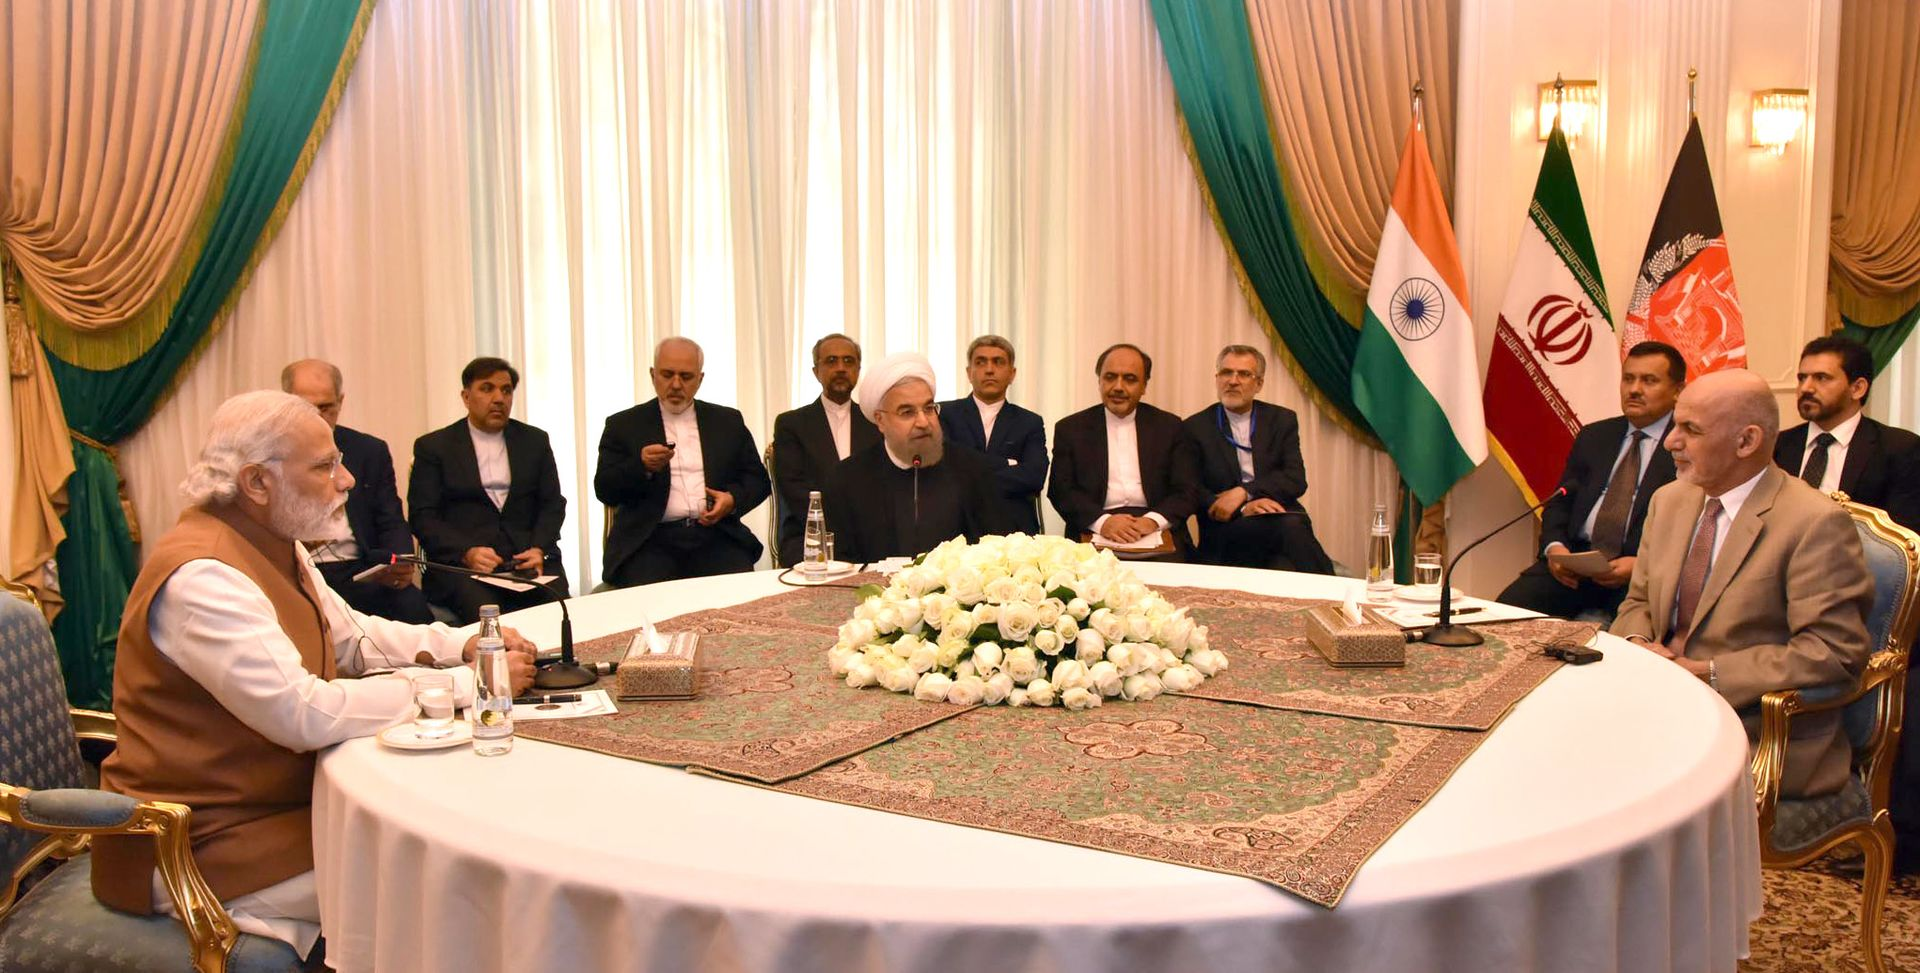 1920px-prime_minister_narendra_modi_attends_a_trilateral_meeting_in_iran